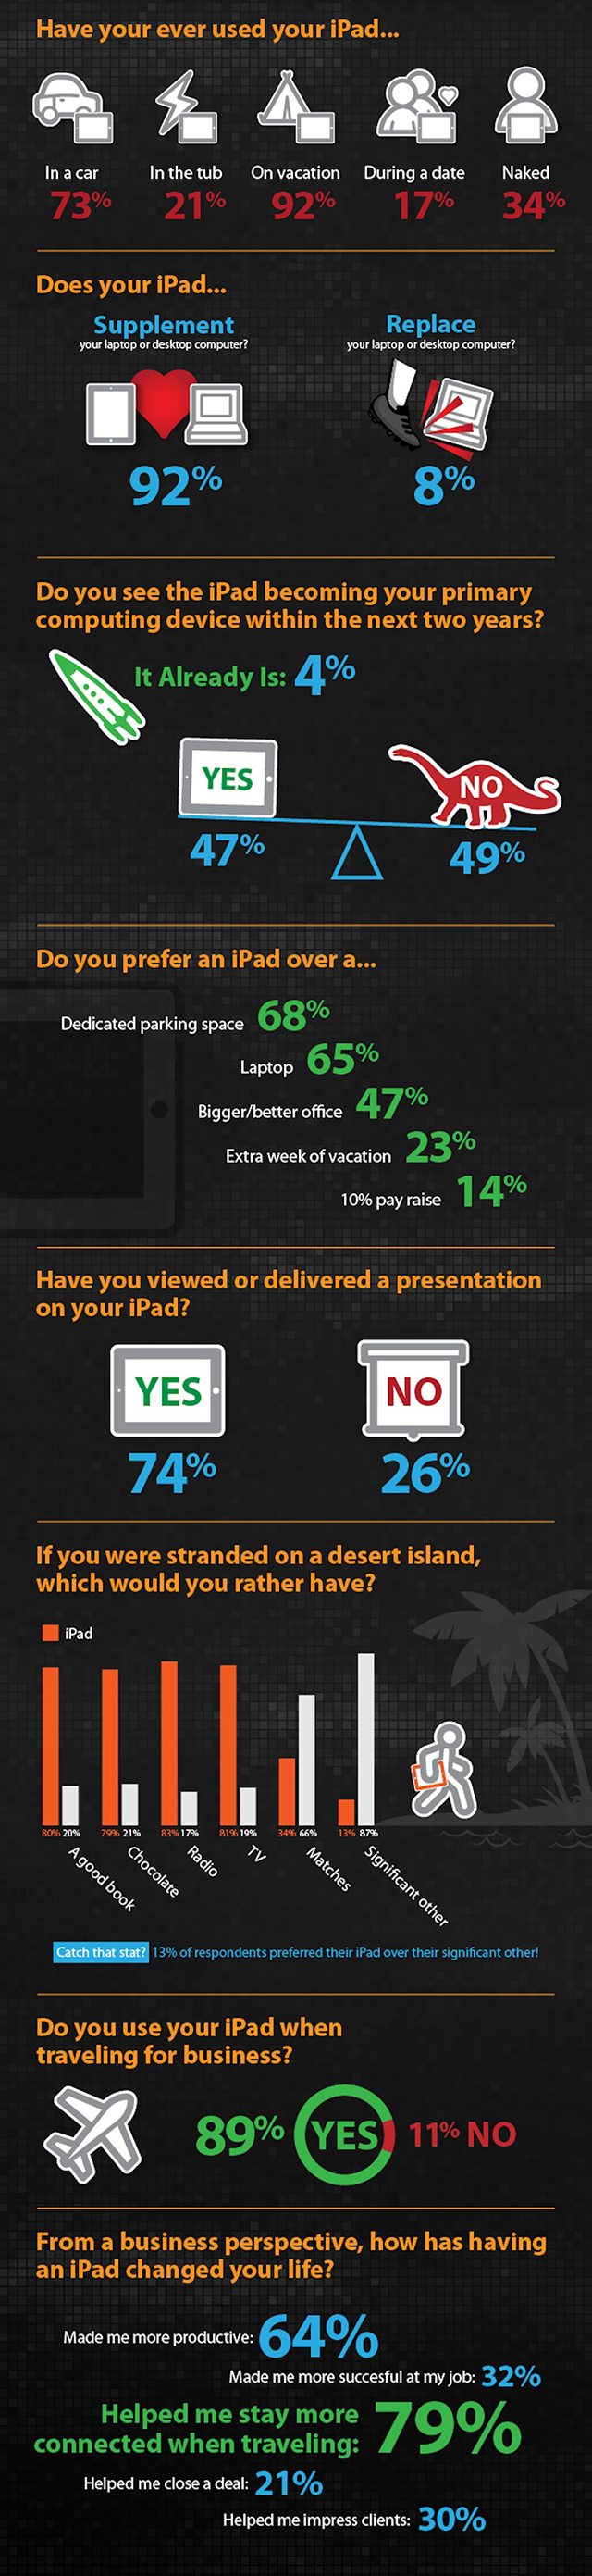 Infograf on how attached business travelers are to their iPads.